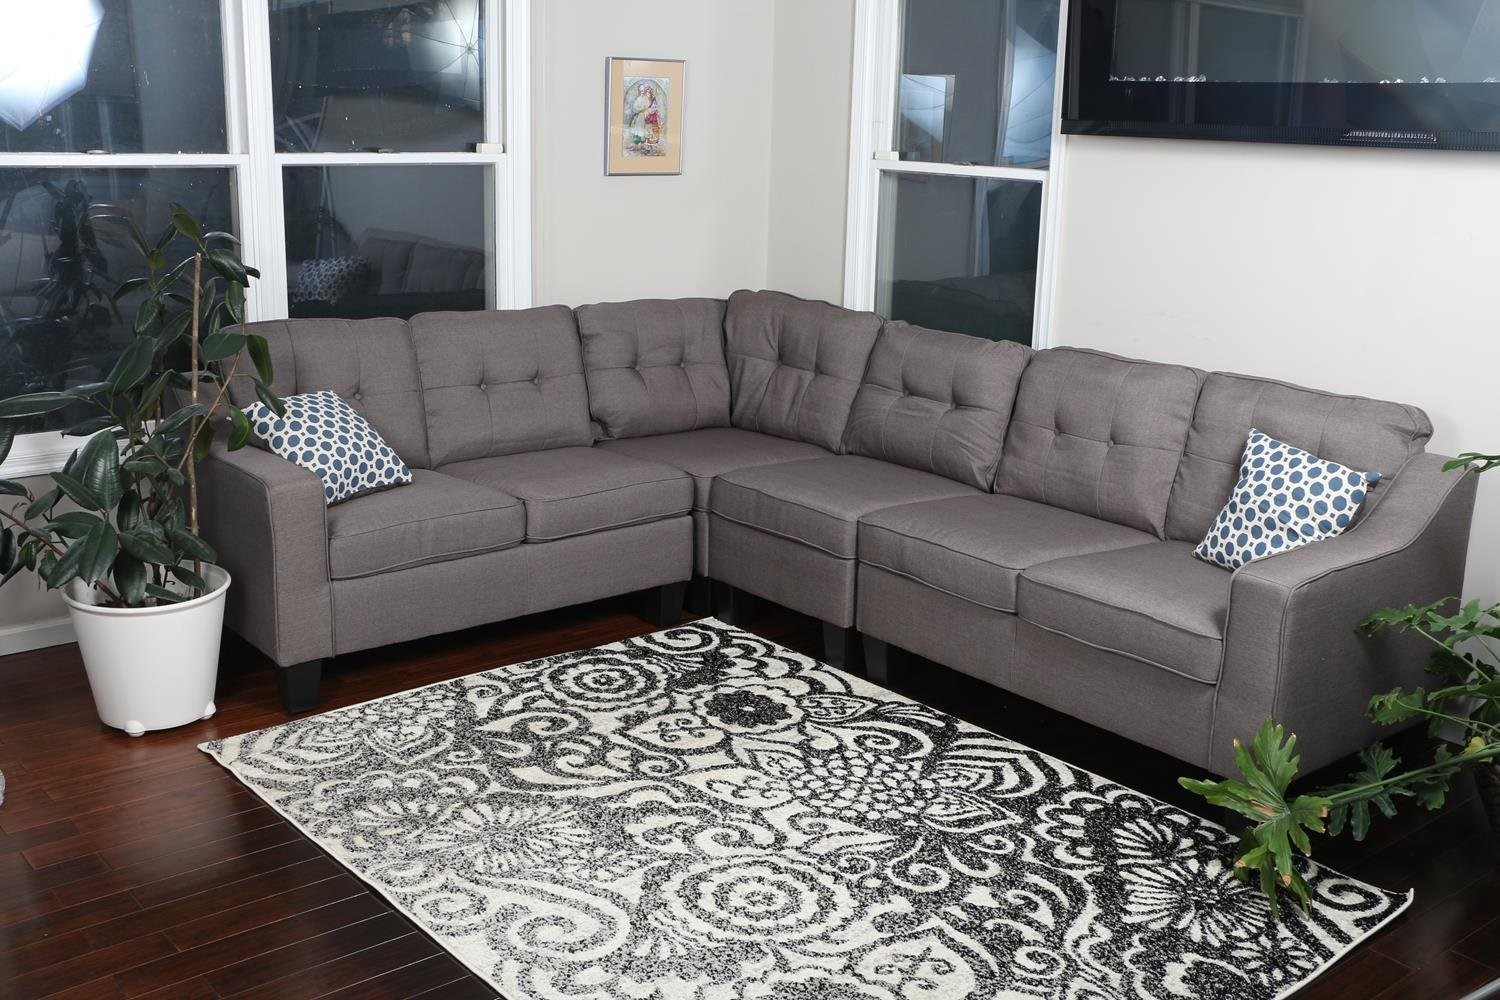 Best Prices Large Brownish Grey Sectional Sofa Review- Free ...